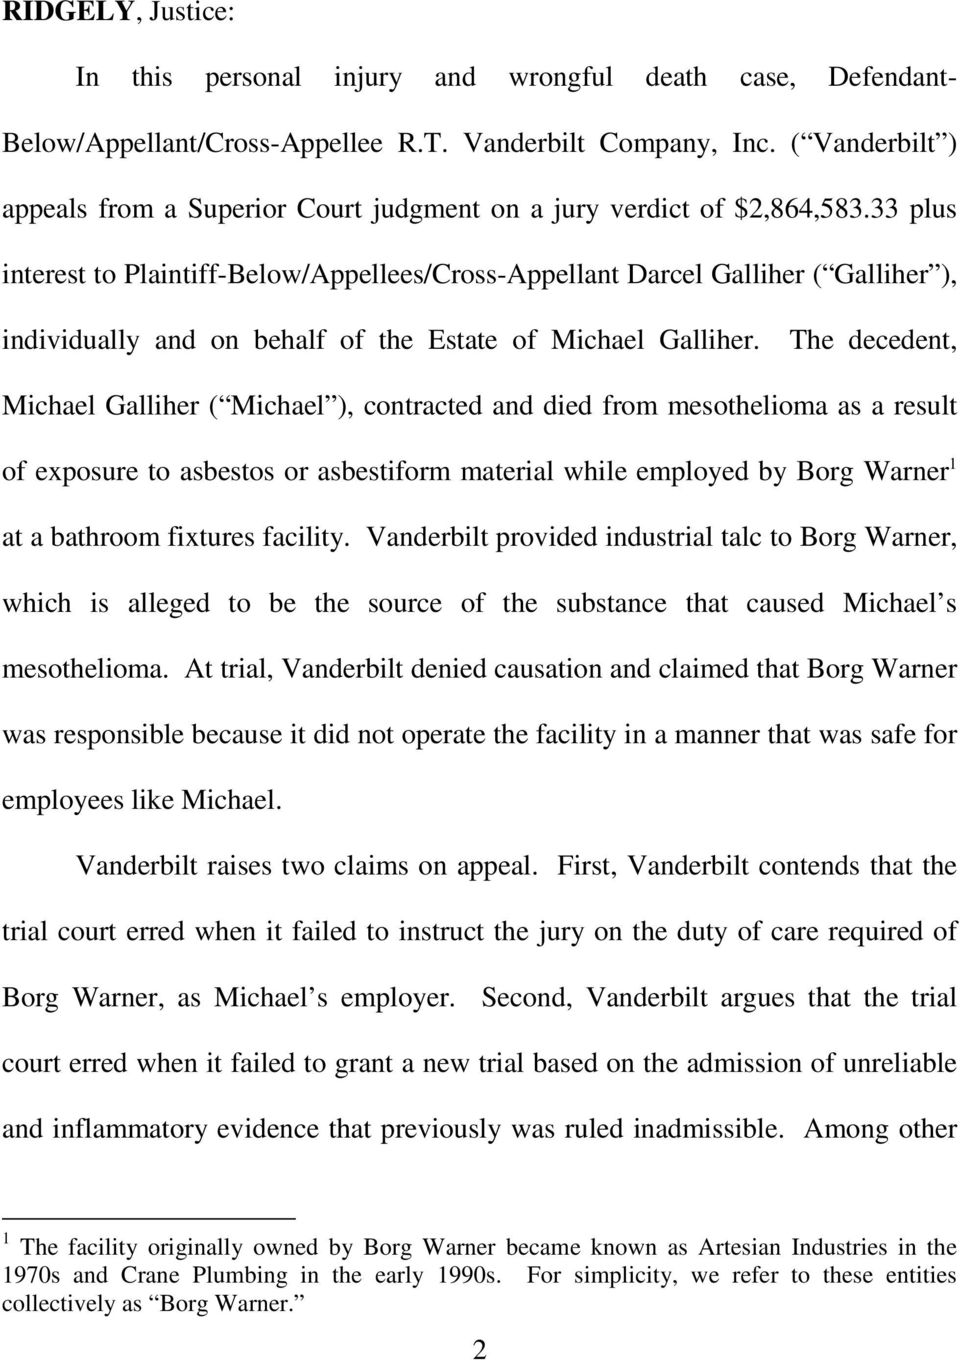 33 plus interest to Plaintiff-Below/Appellees/Cross-Appellant Darcel Galliher ( Galliher ), individually and on behalf of the Estate of Michael Galliher.